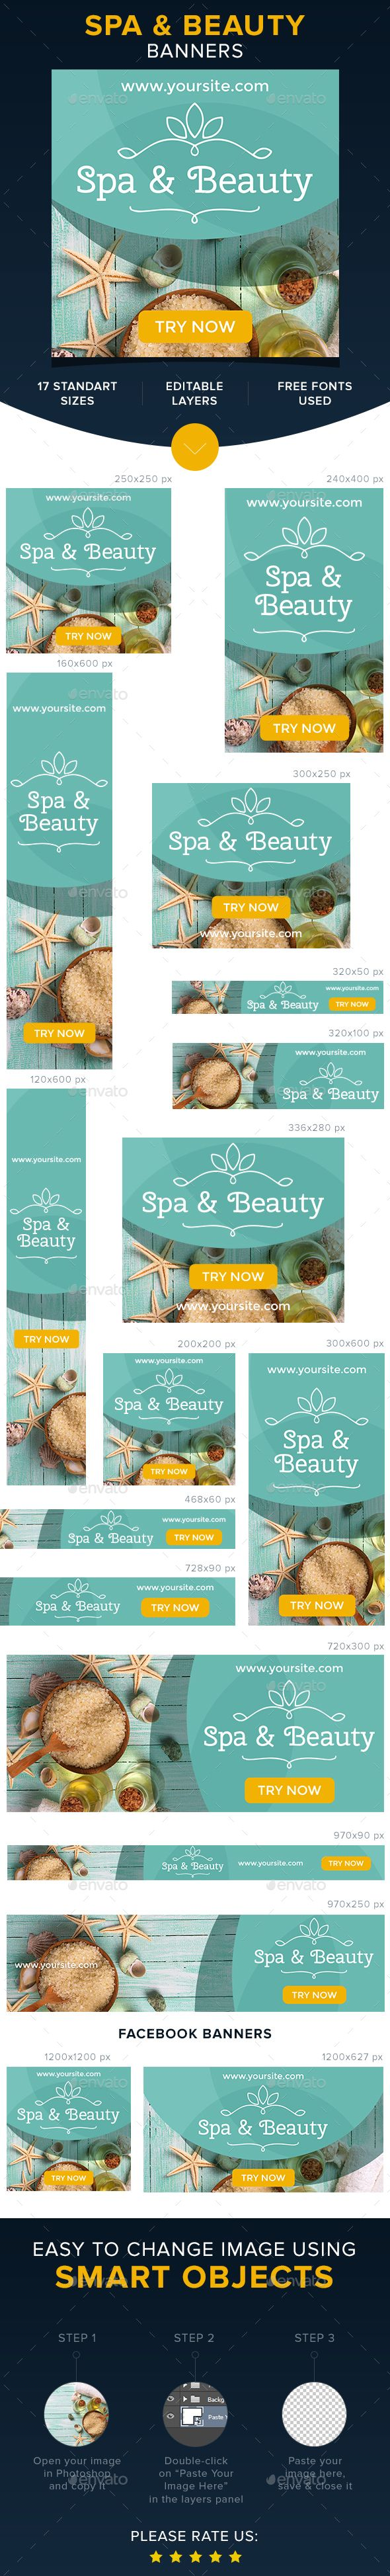 Web design Beauty  Spa ad banners. For sale on GraphicRiver. More